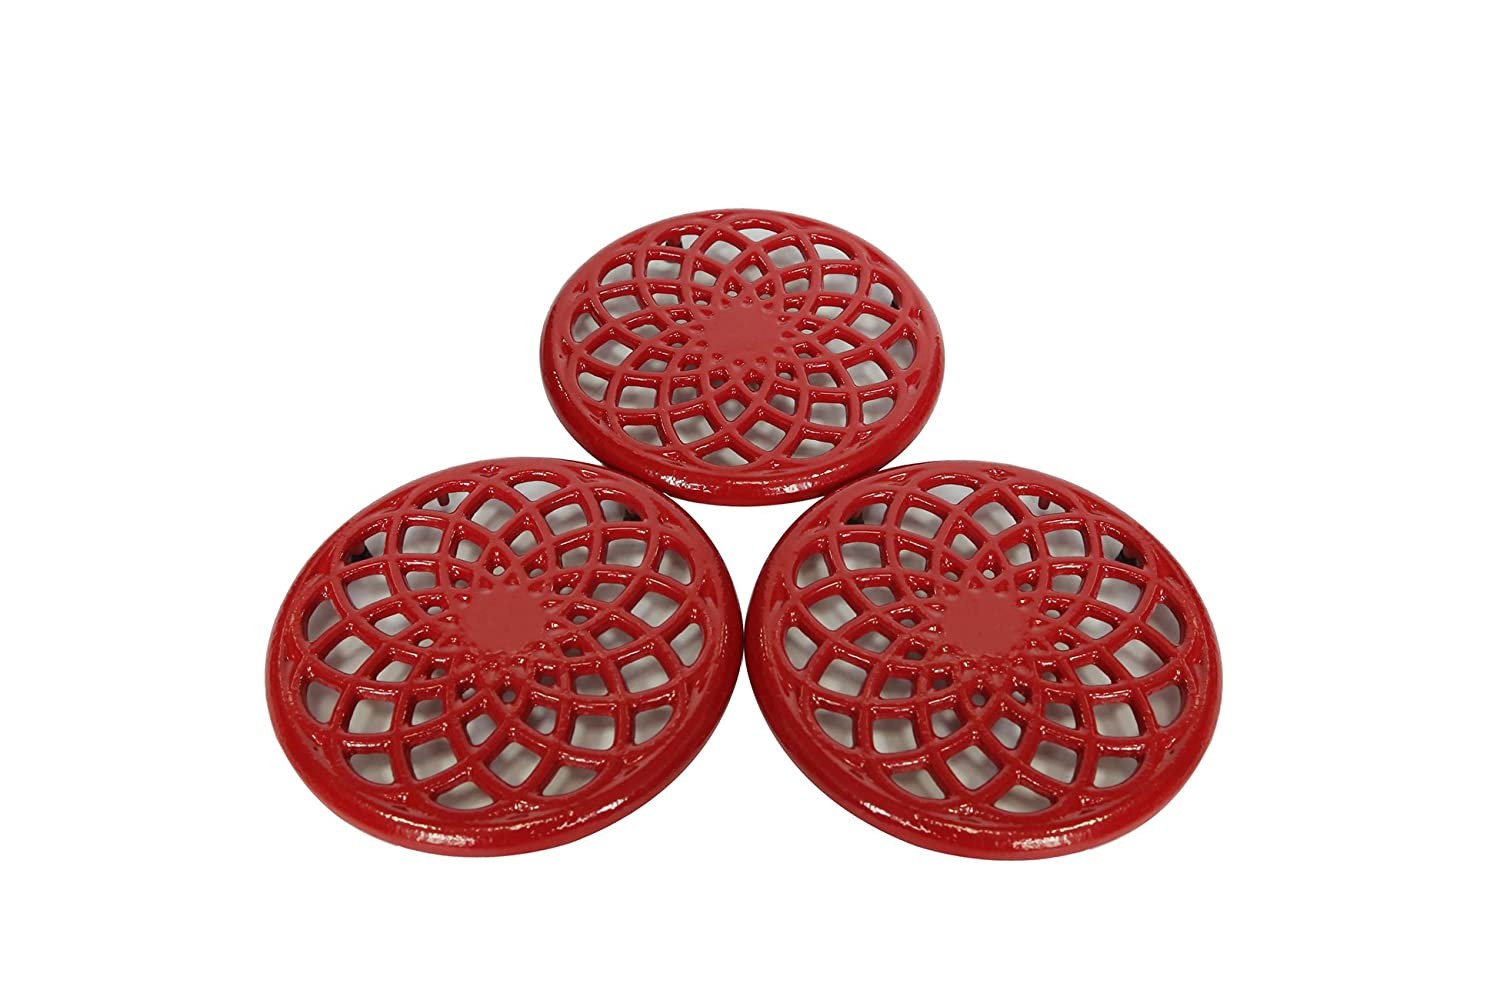 Cast Iron Decorative Metal Trivet Set by Trademark Innovations (Set of 3 Red)